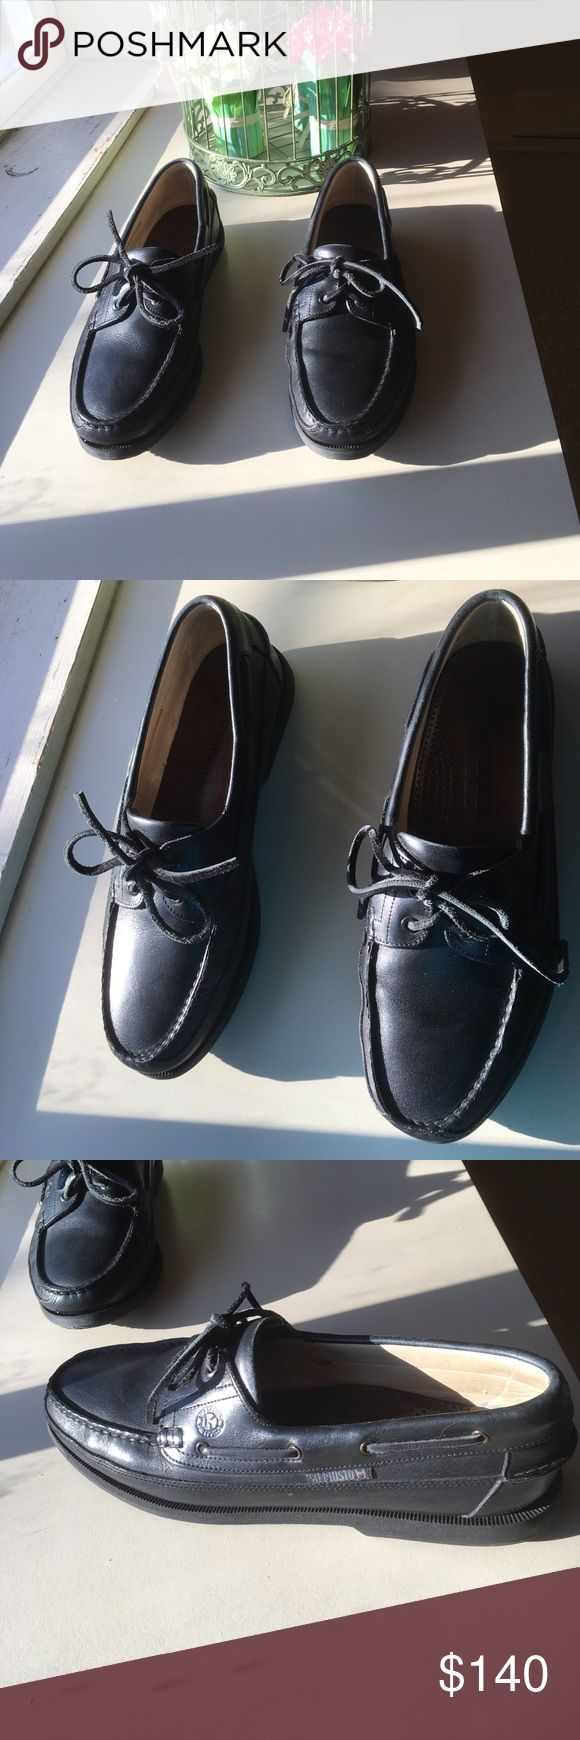 "Mephisto black boat shoes. If you know shoes Mephisto is quality and ""worlds most comfortable walking shoe. Backed by company for lifetime satisfaction. Worn twice.great condition. Size US 11. EUR 10-1/2. I love em but Too big.really great shoe. Mephisto Shoes Loafers & Slip-Ons"